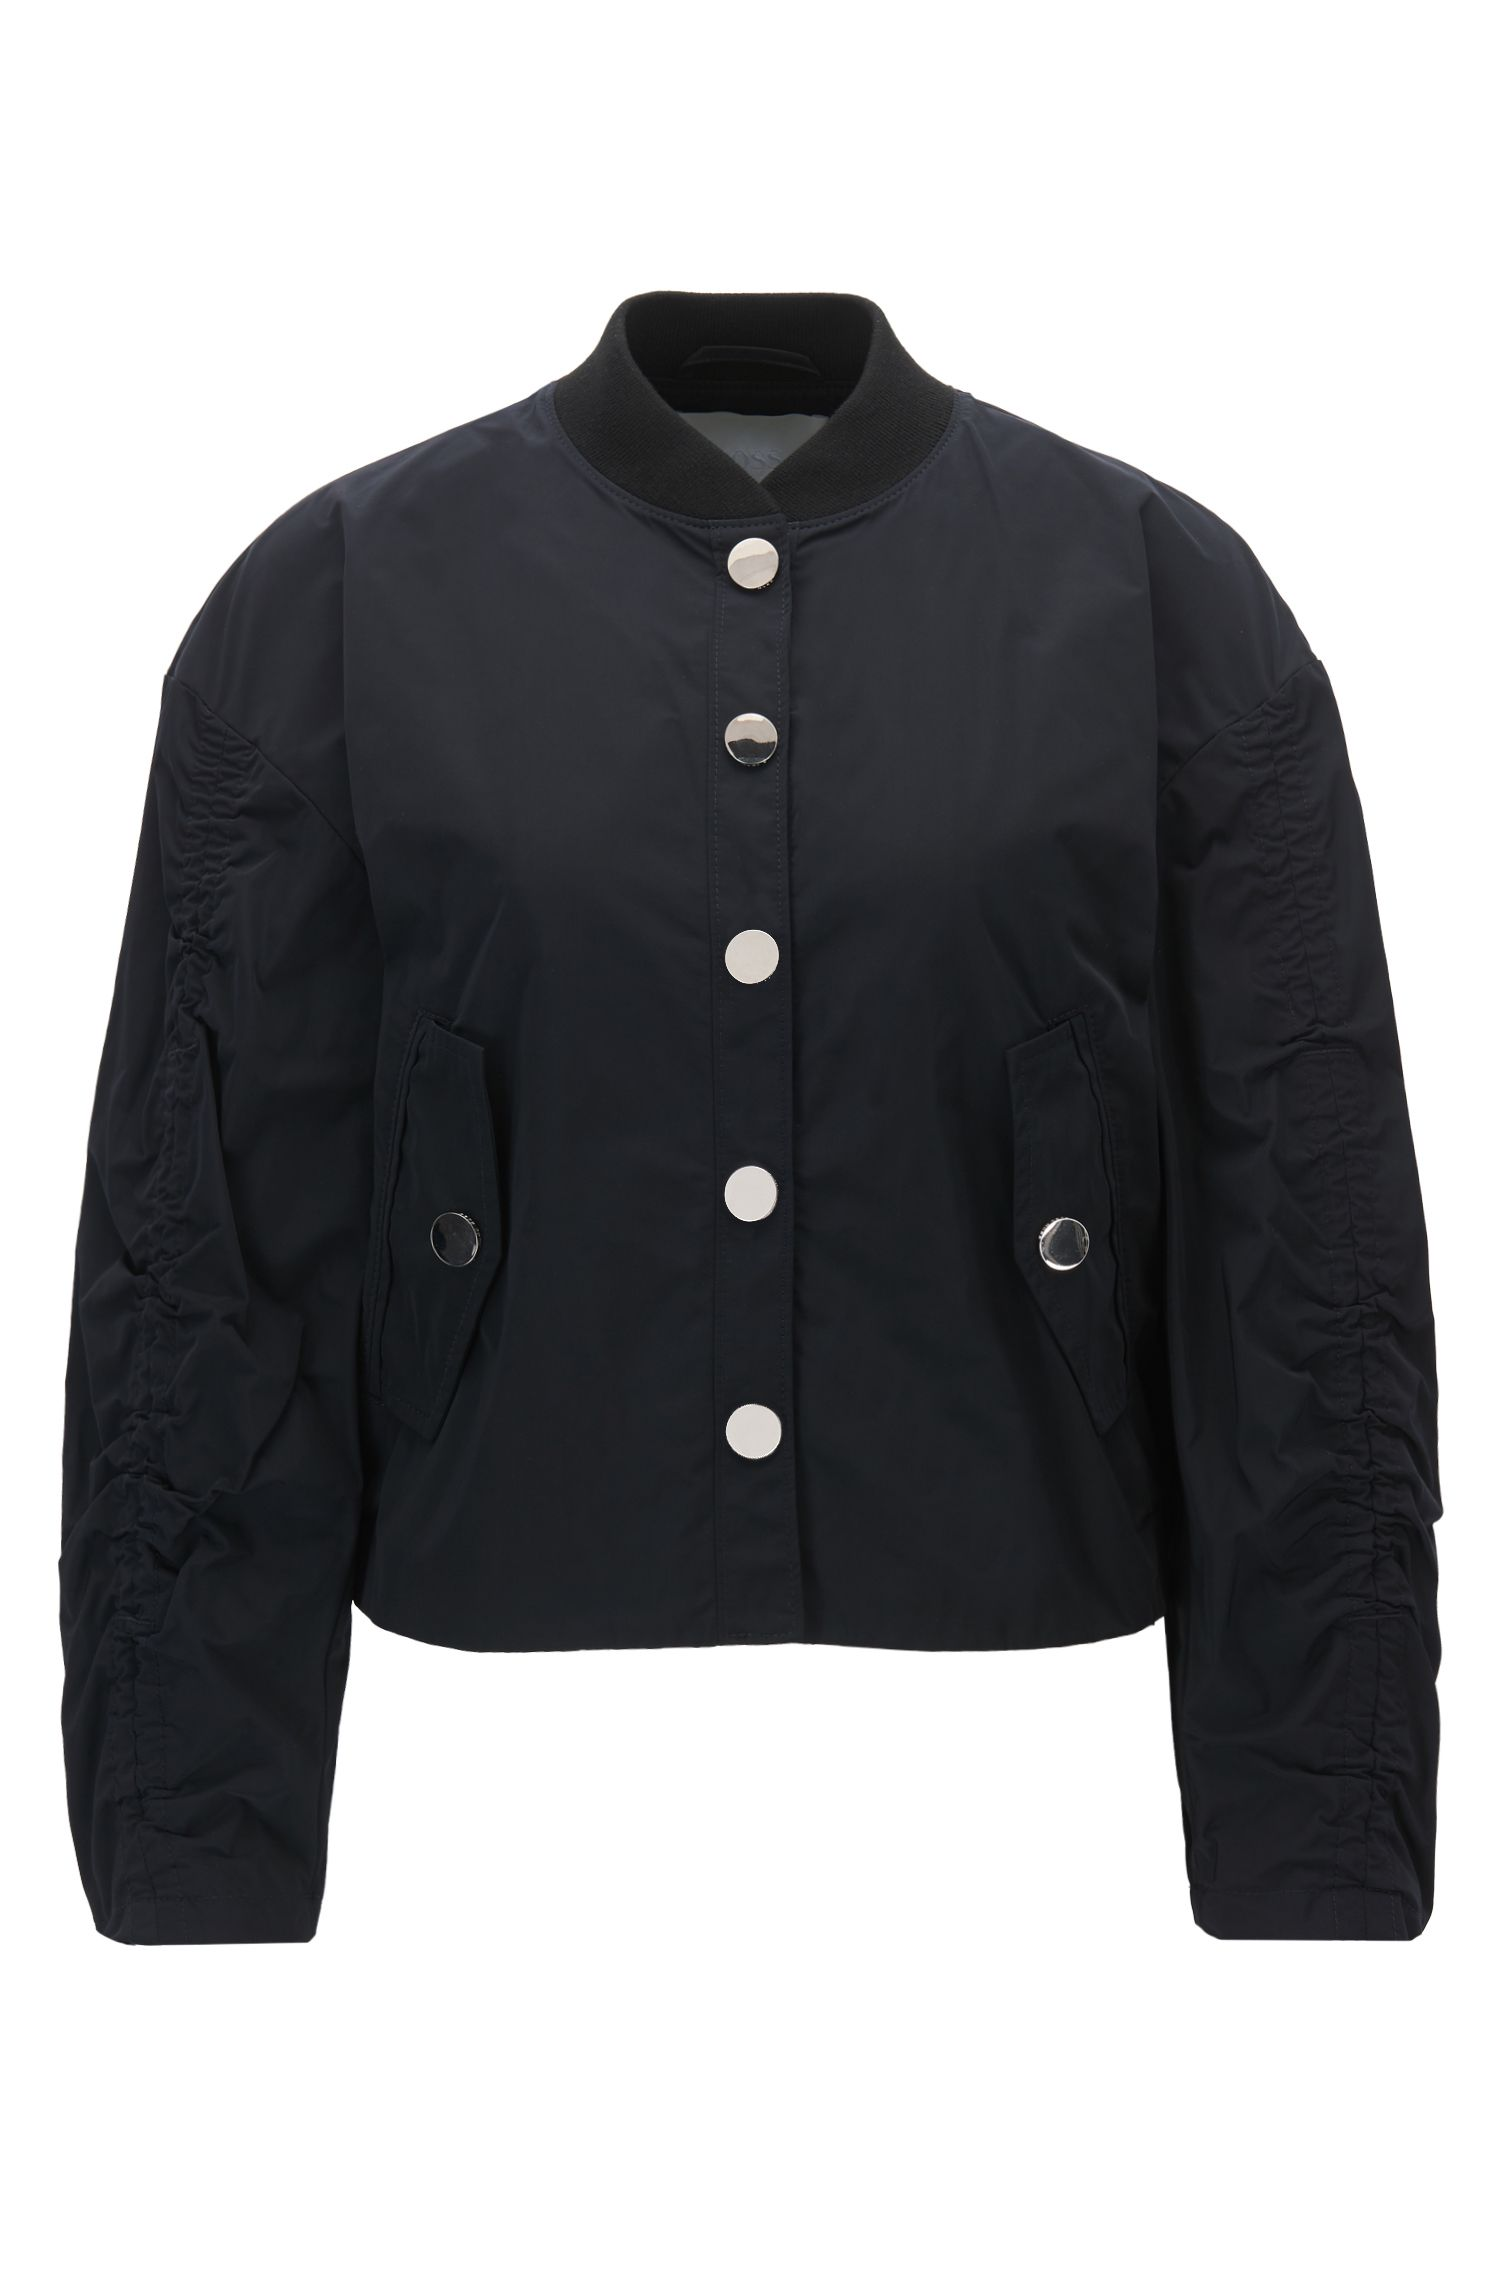 Water-repellent bomber jacket with gathered sleeves